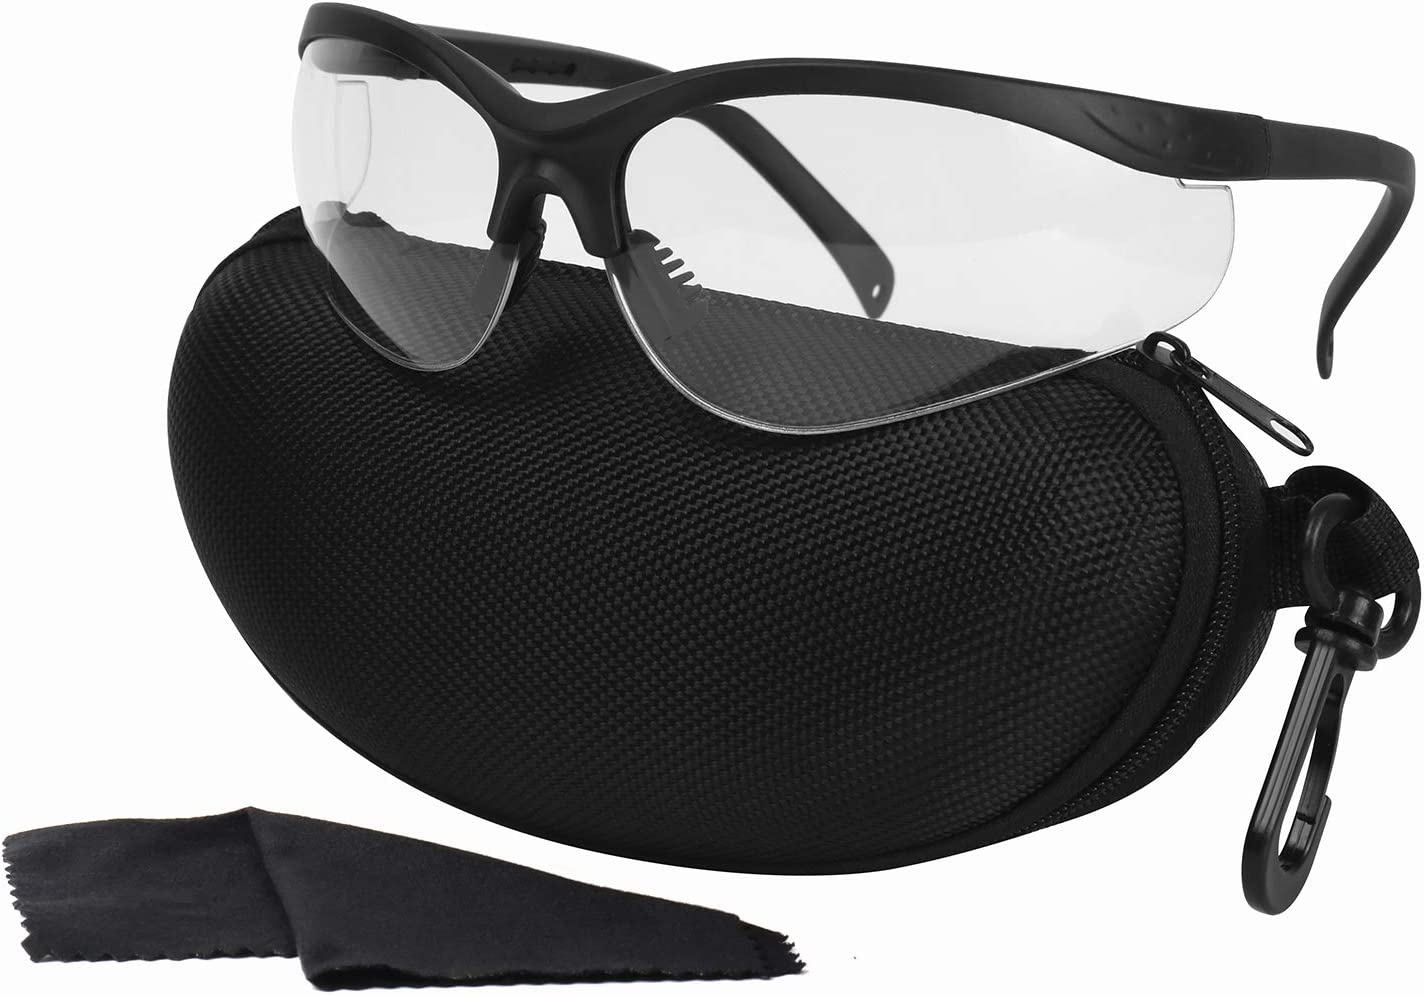 LaneTop Shooting Glasses for Men and Women, Anti Fog ANSI Z87.1 Safety Glasses with Hard Shell Case, UV400 Eye Protection for Shooting Range Glasses